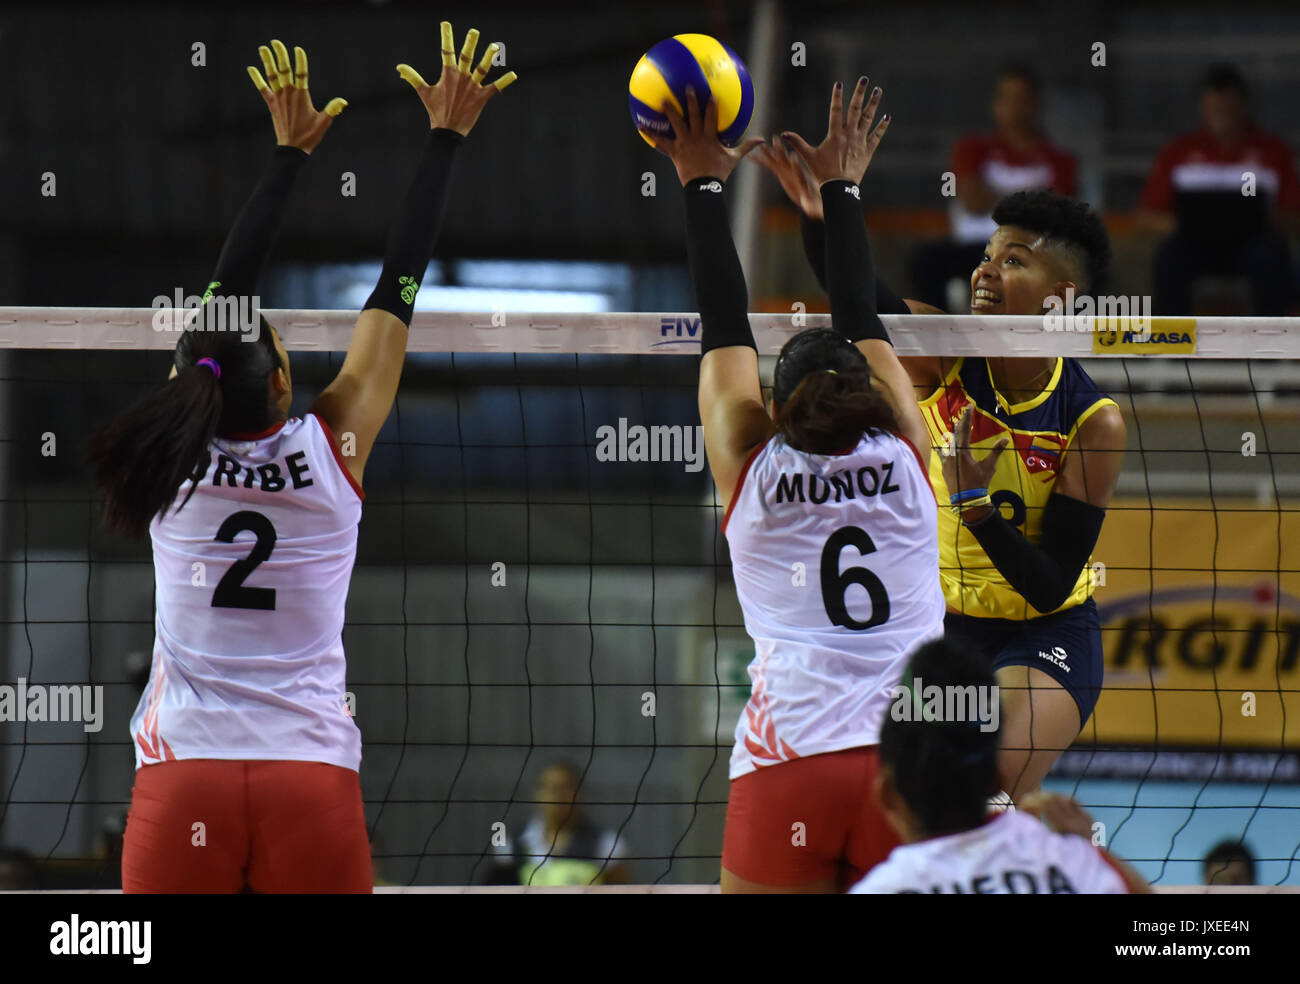 97cb2dcea Colombia s Margarita Martínez (R) in action against Peru s Mirtha Uribe (L)  and